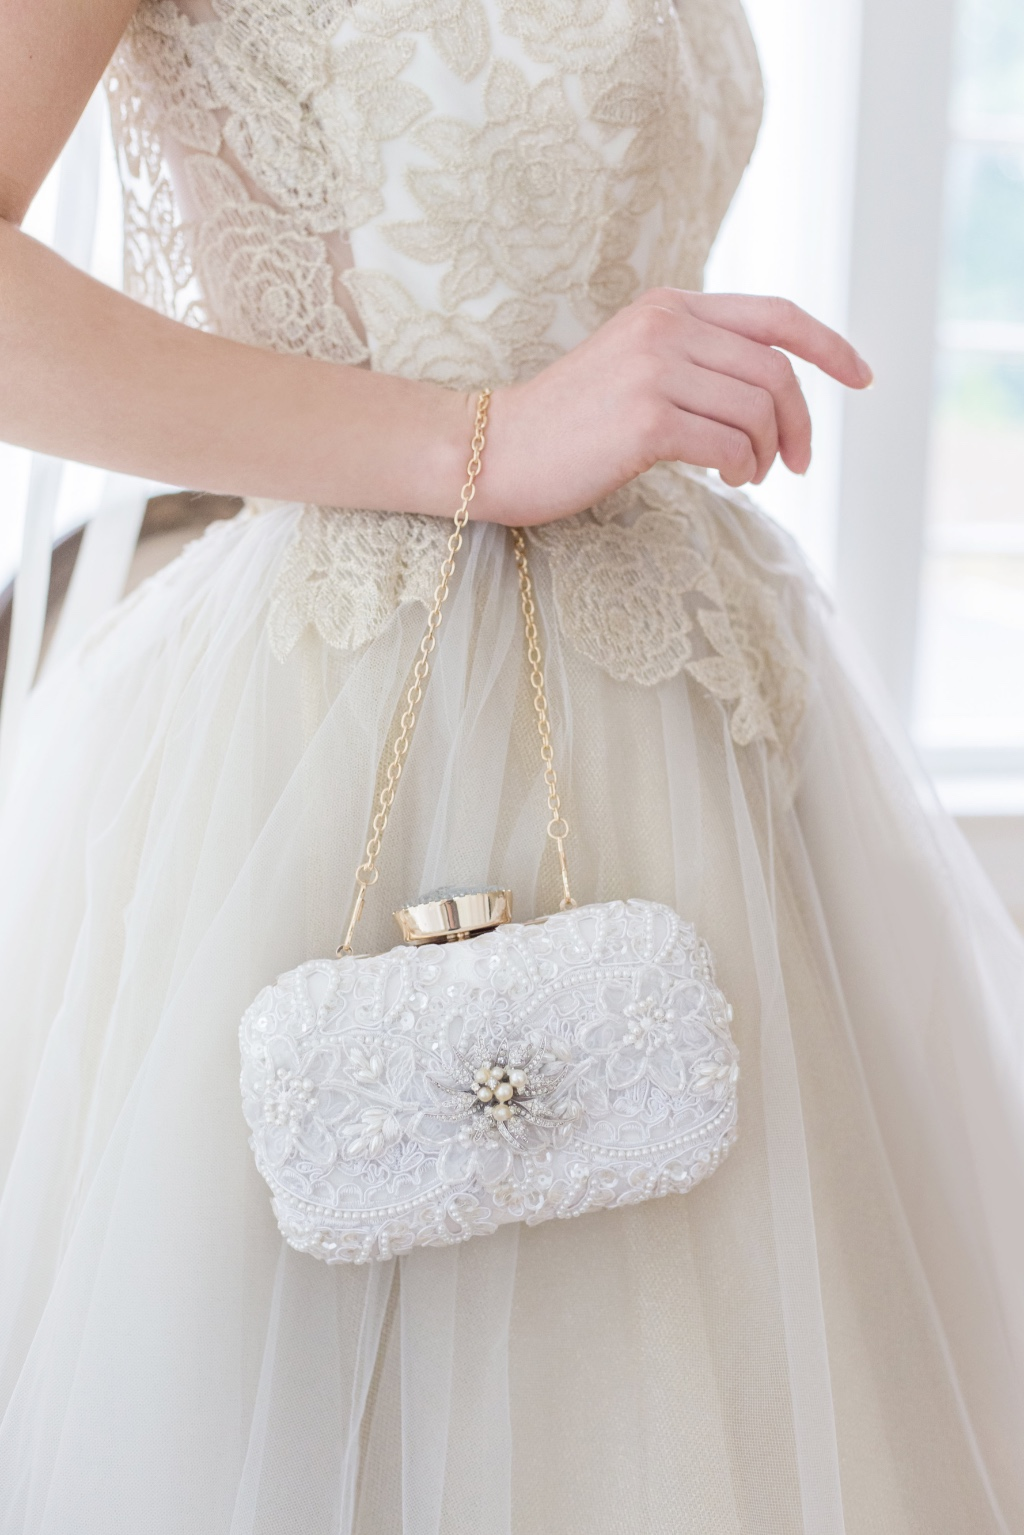 Small couture bridal clutches that hold all our wedding day essentials.